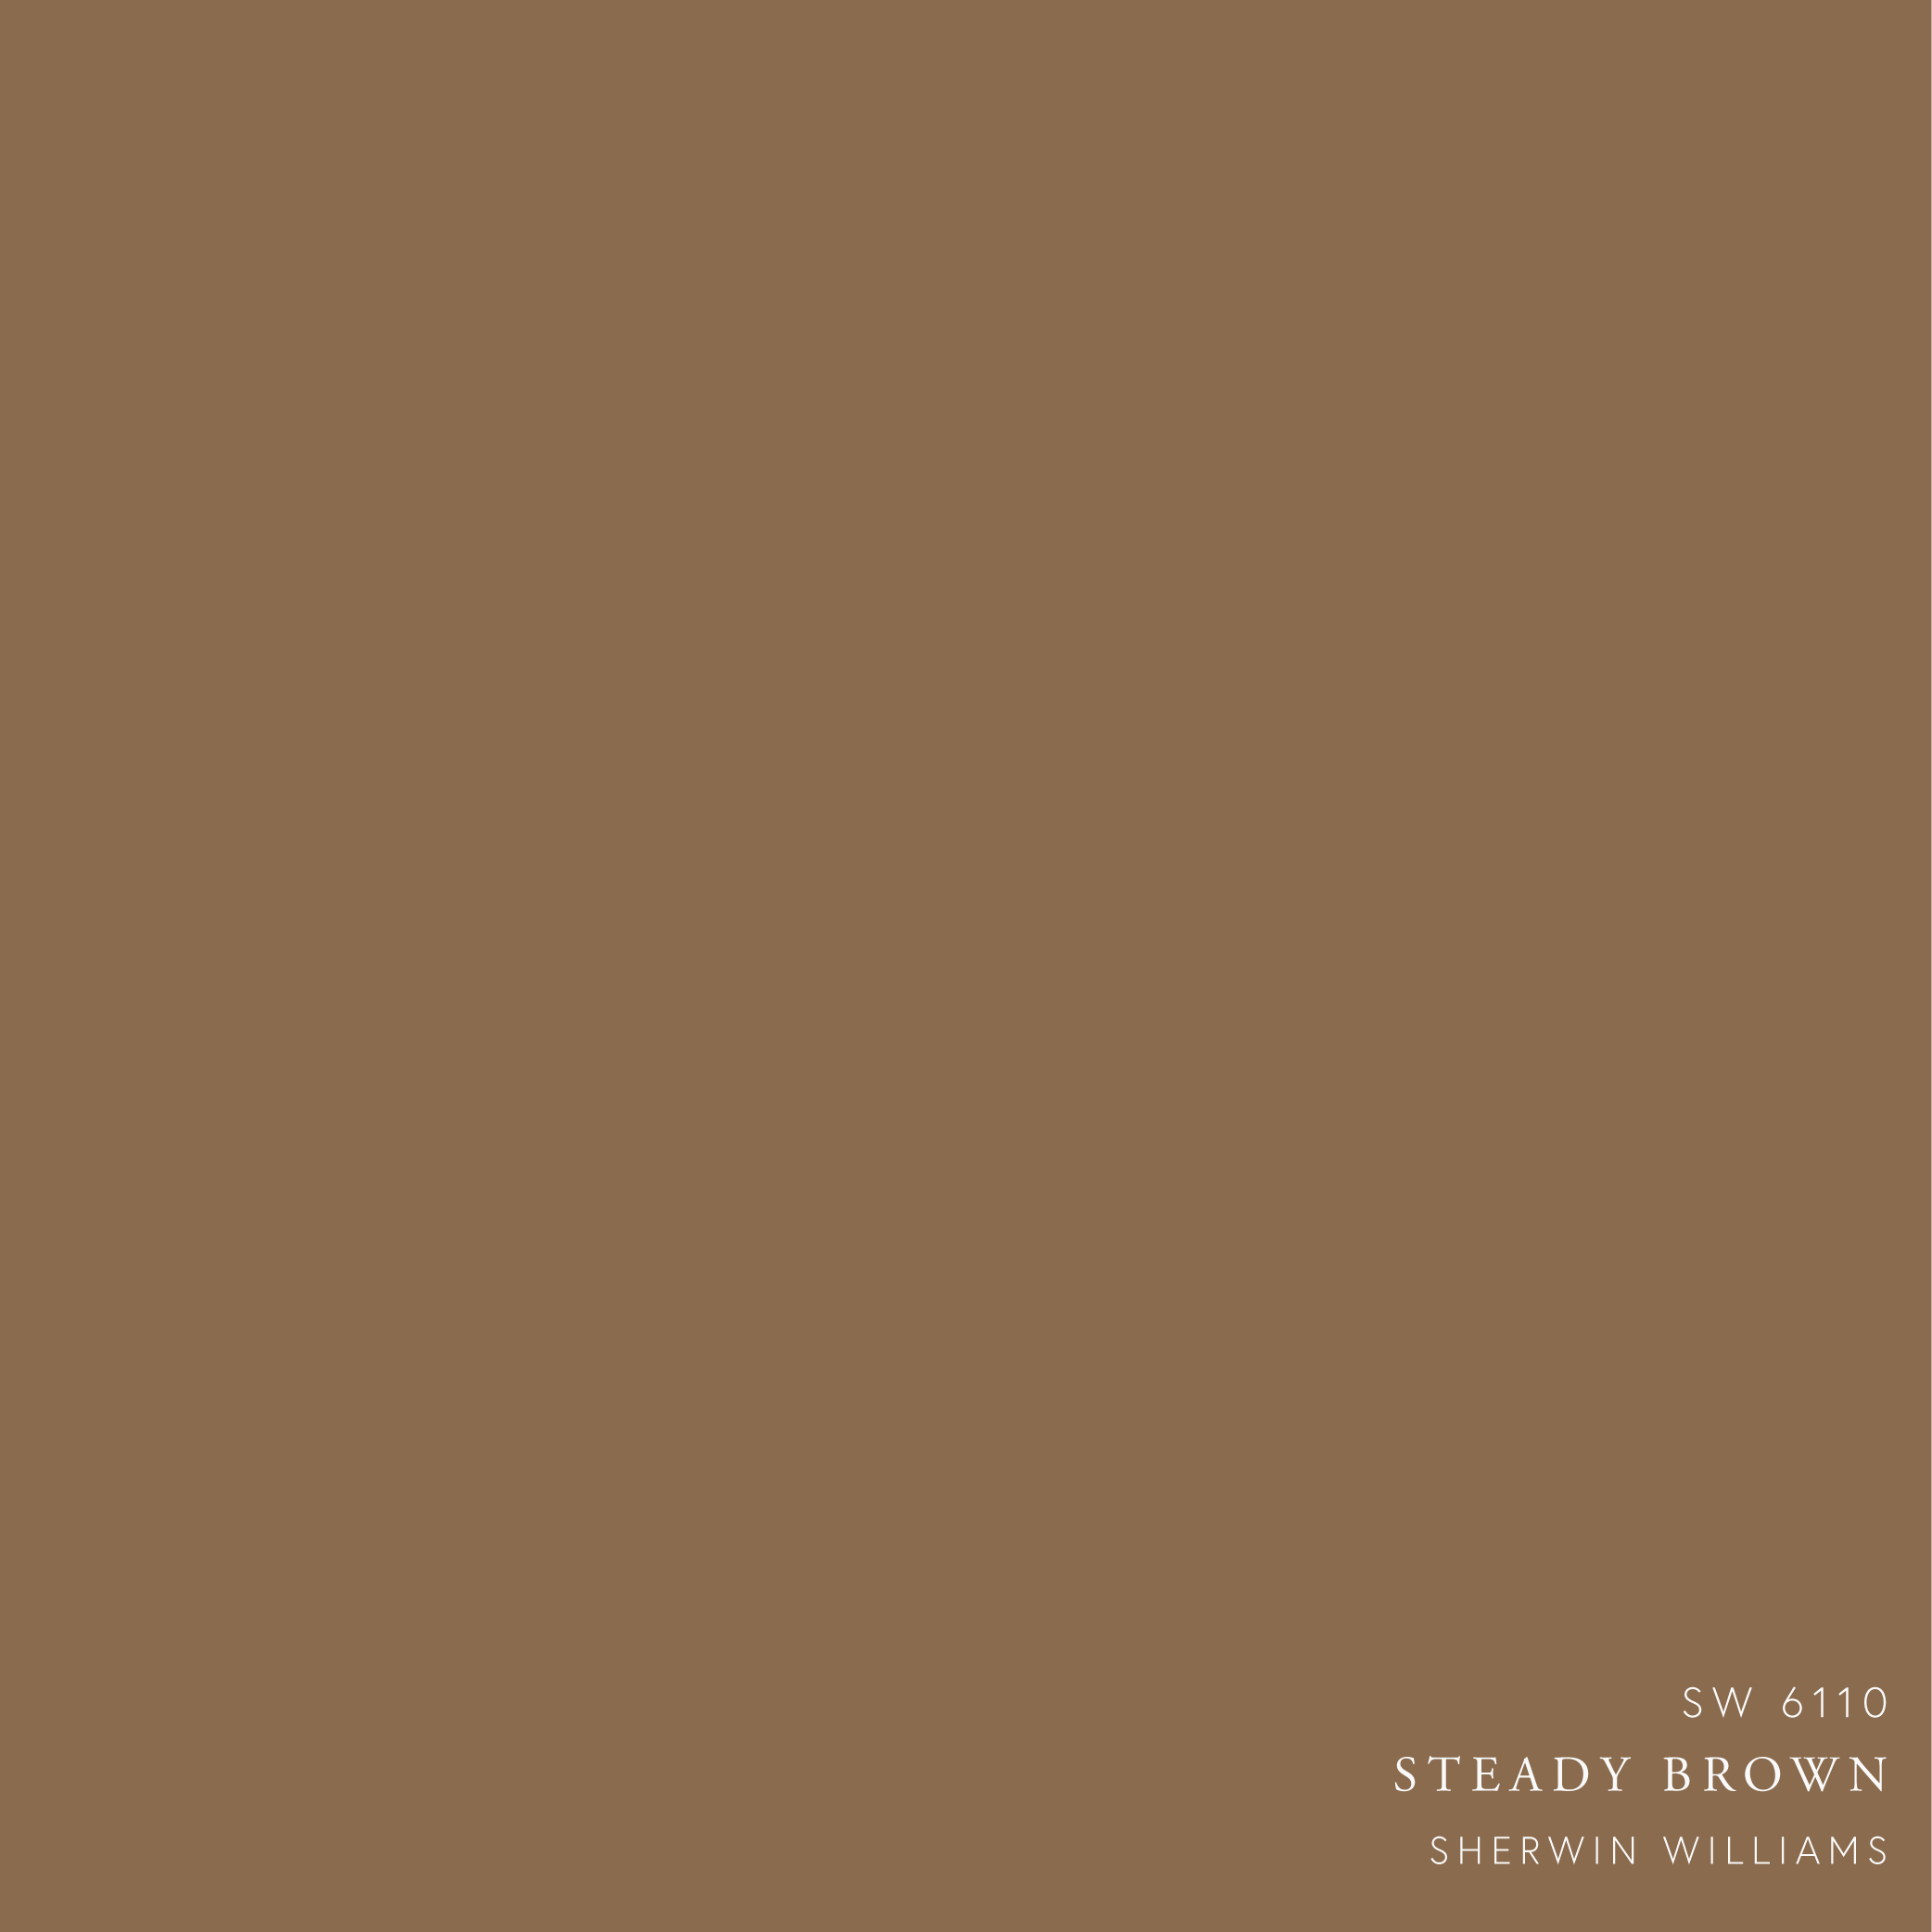 sherwin williams steady brown paint color  - fall 2018 trends moody truffle moodboard by the savvy heart-01-01.jpg